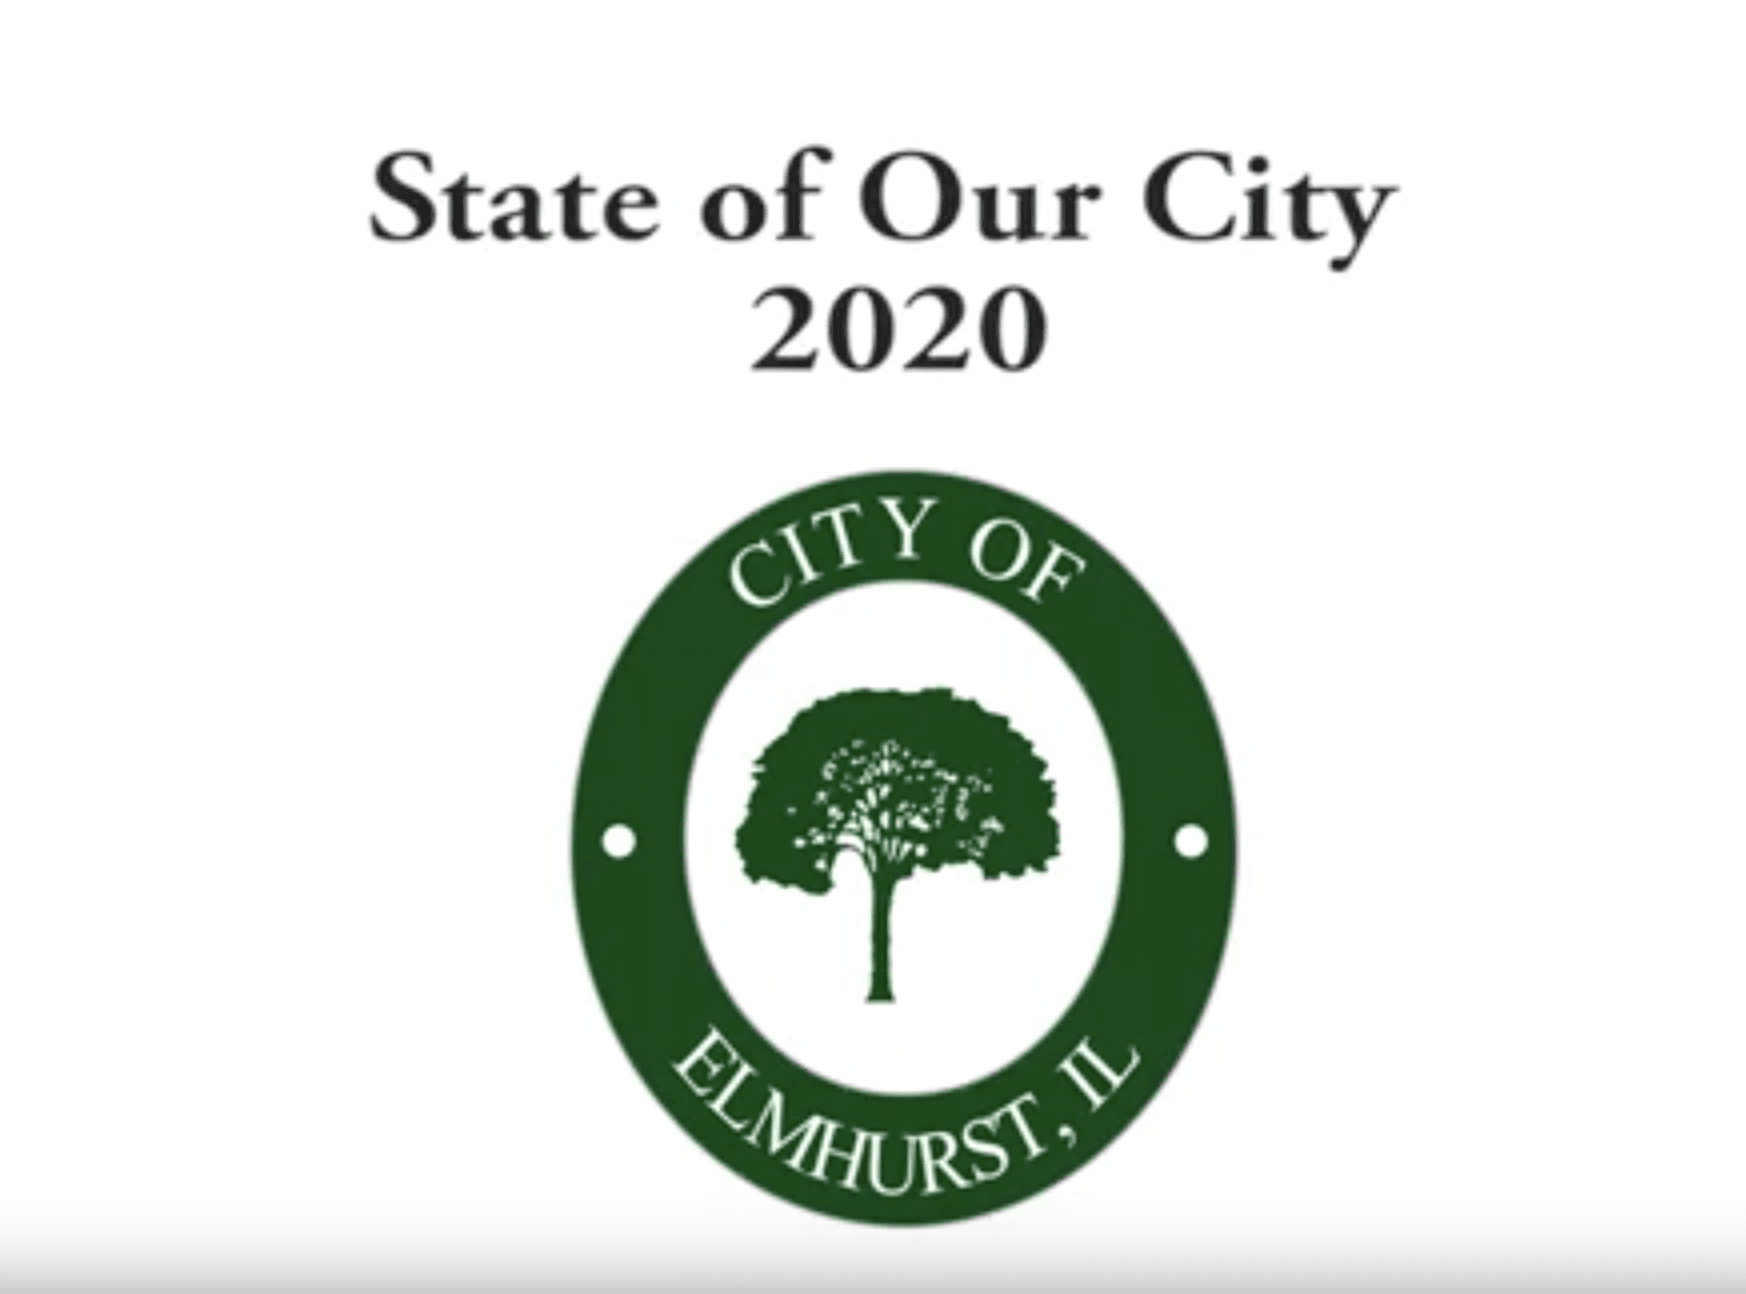 Mayor's 2020 State of Our City Address